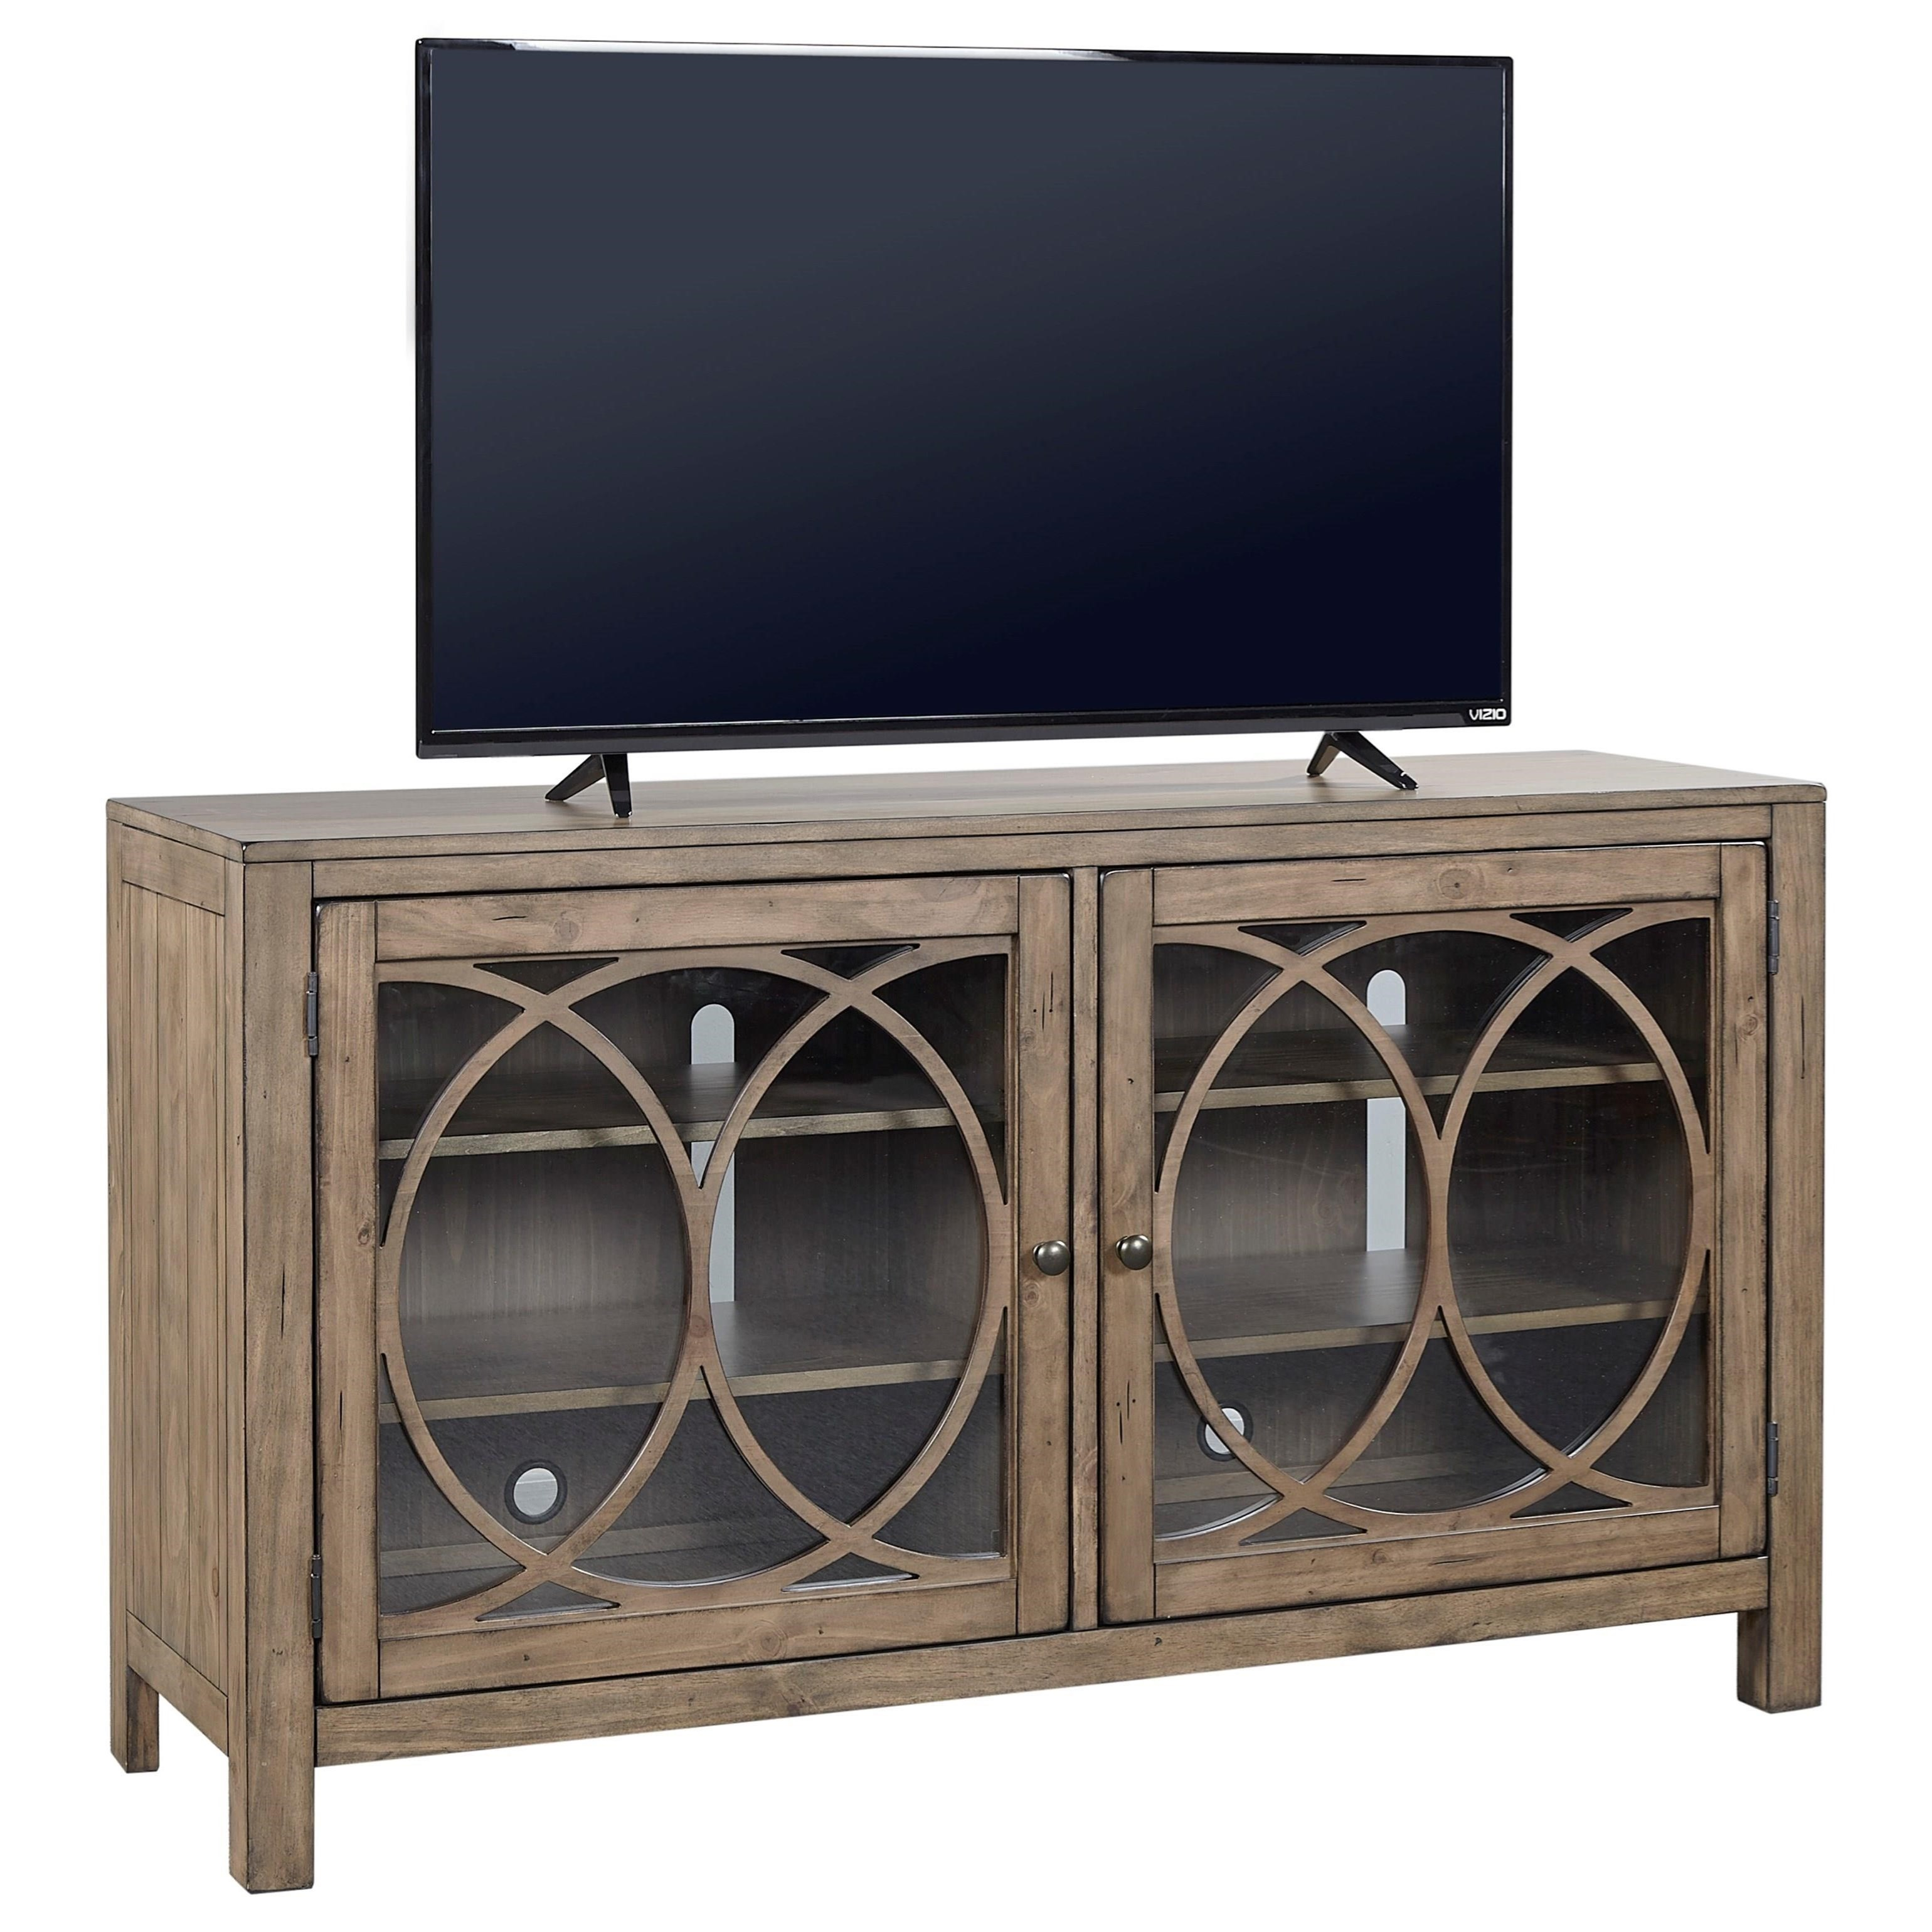 "Aspenhome Tildon 60"" Library/Media Console - Item Number: I56-246"